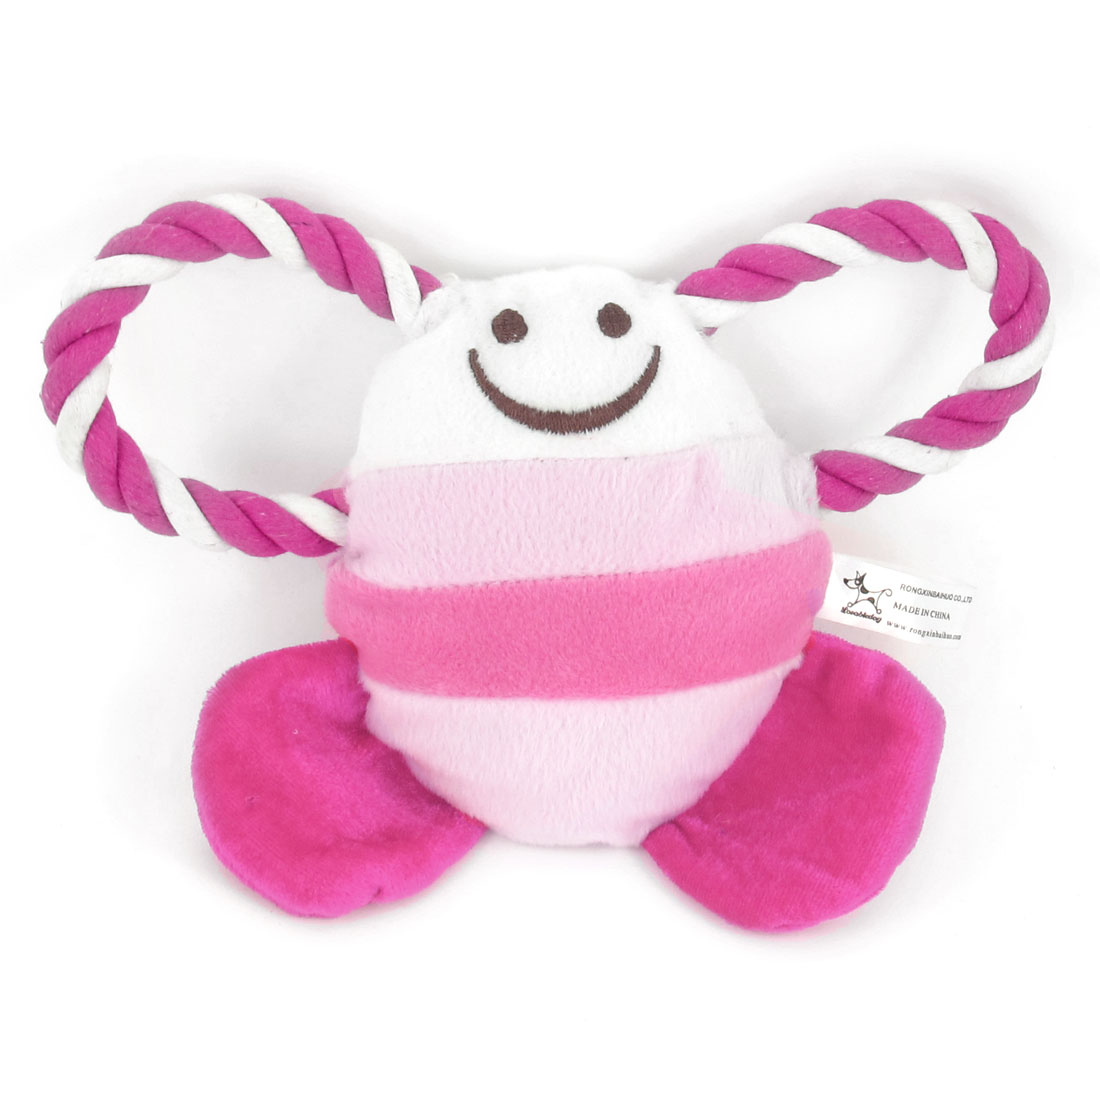 "8.5"" Long Pet Twisted Tug Rope Tropical Fish Design Squeeze Squeak Doll Toy Pink"